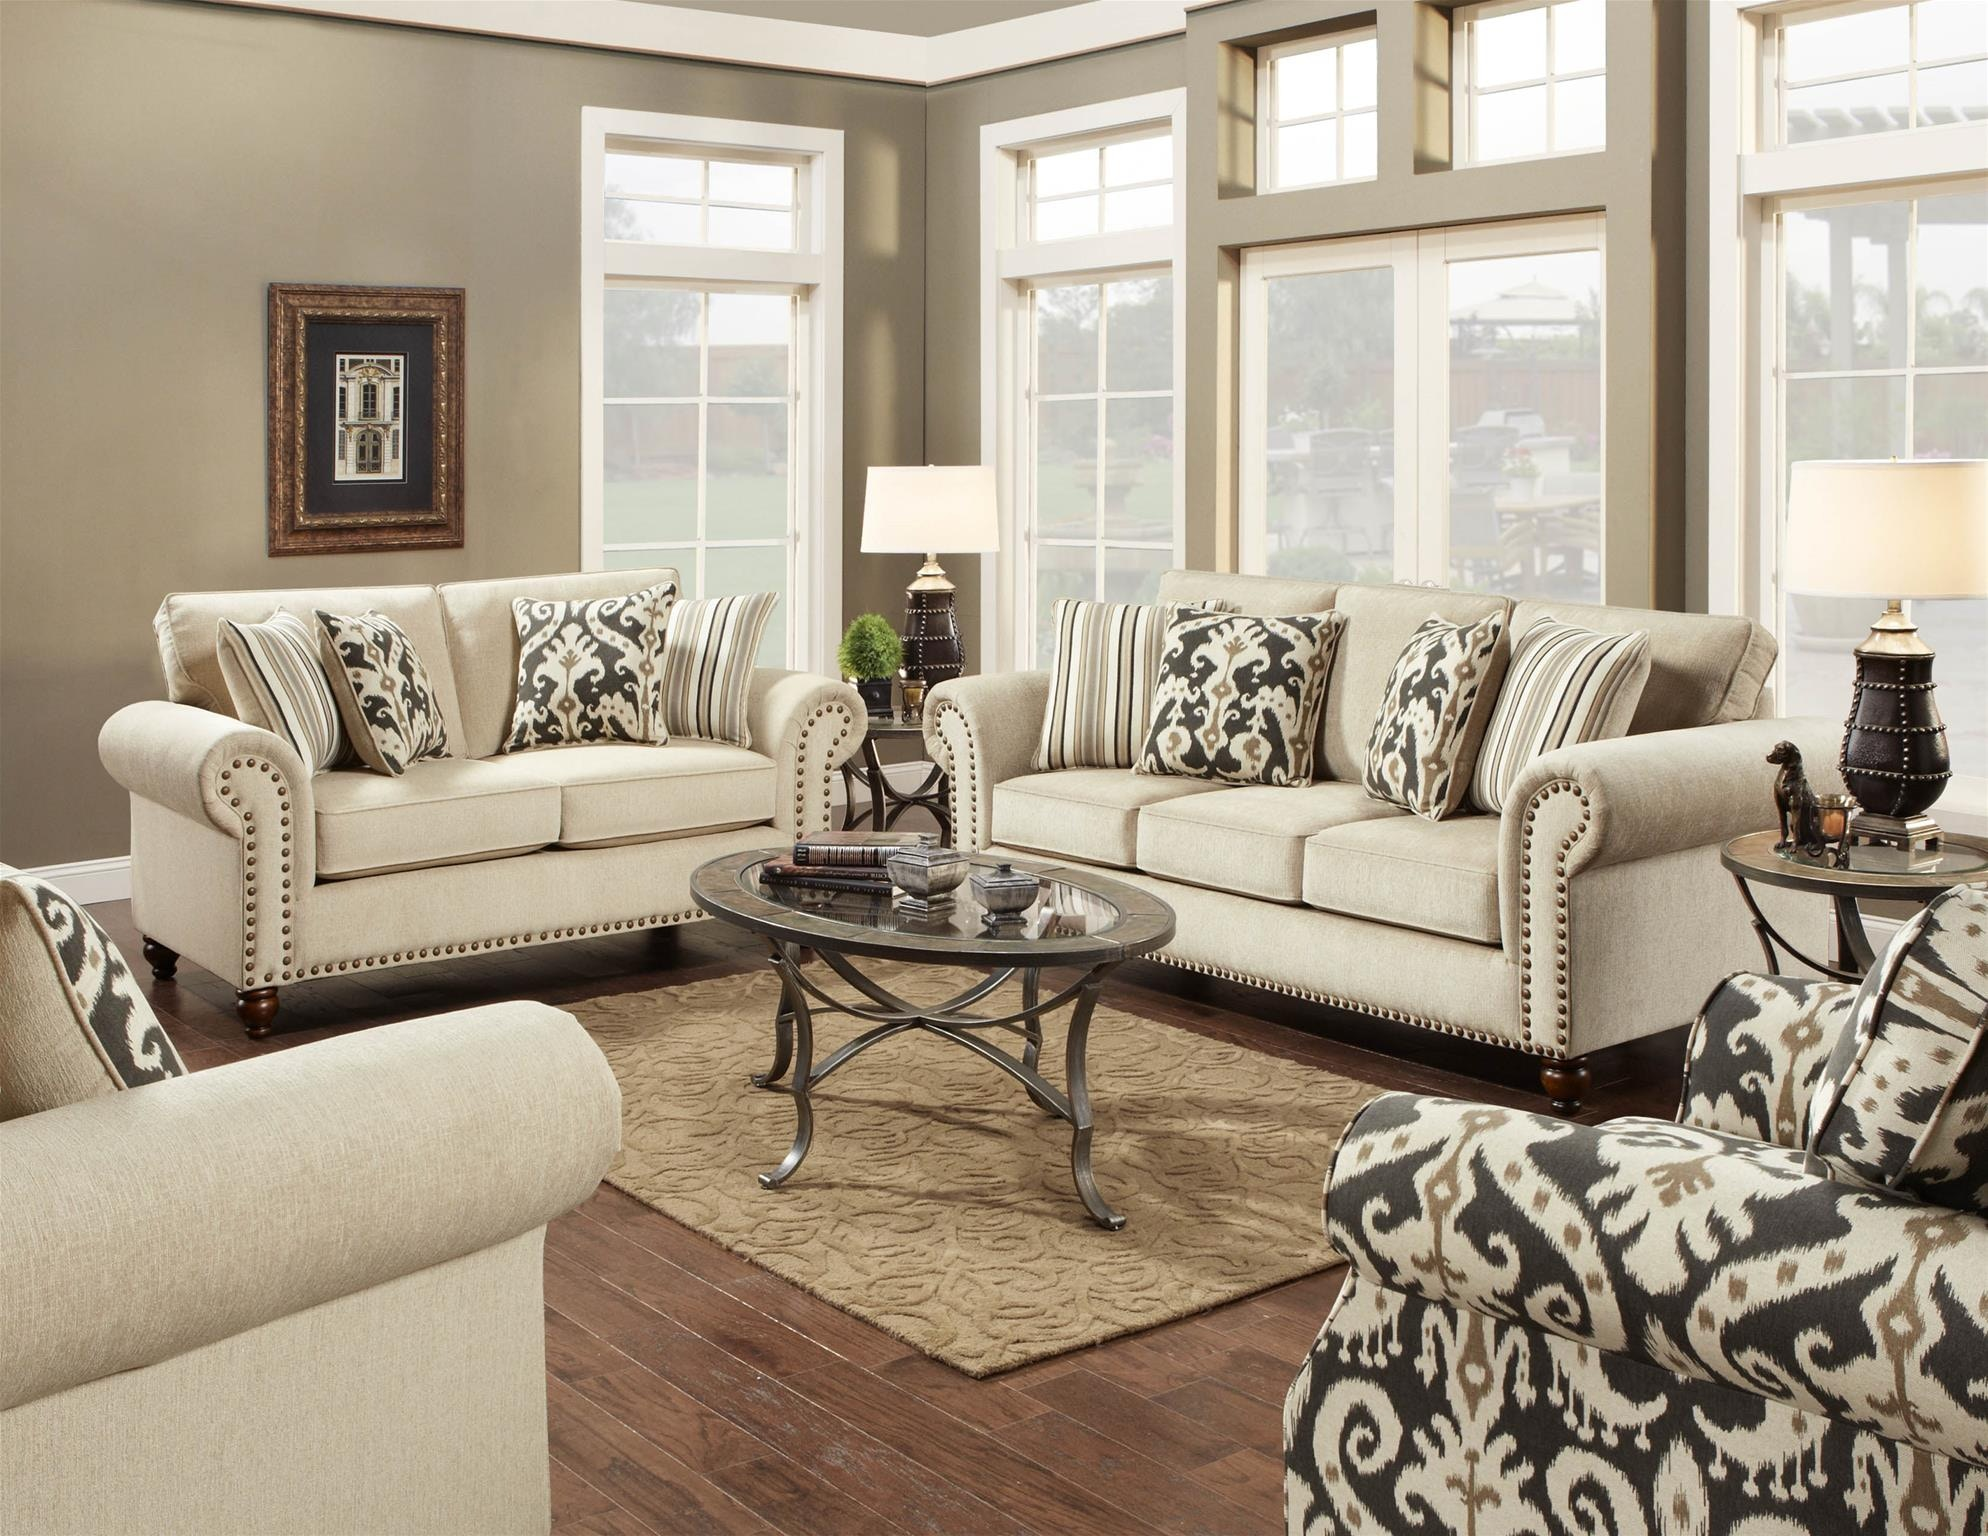 Bon Fusion Living Room Chair 1/2 3112Fairly Sand At Priba Furniture And  Interiors